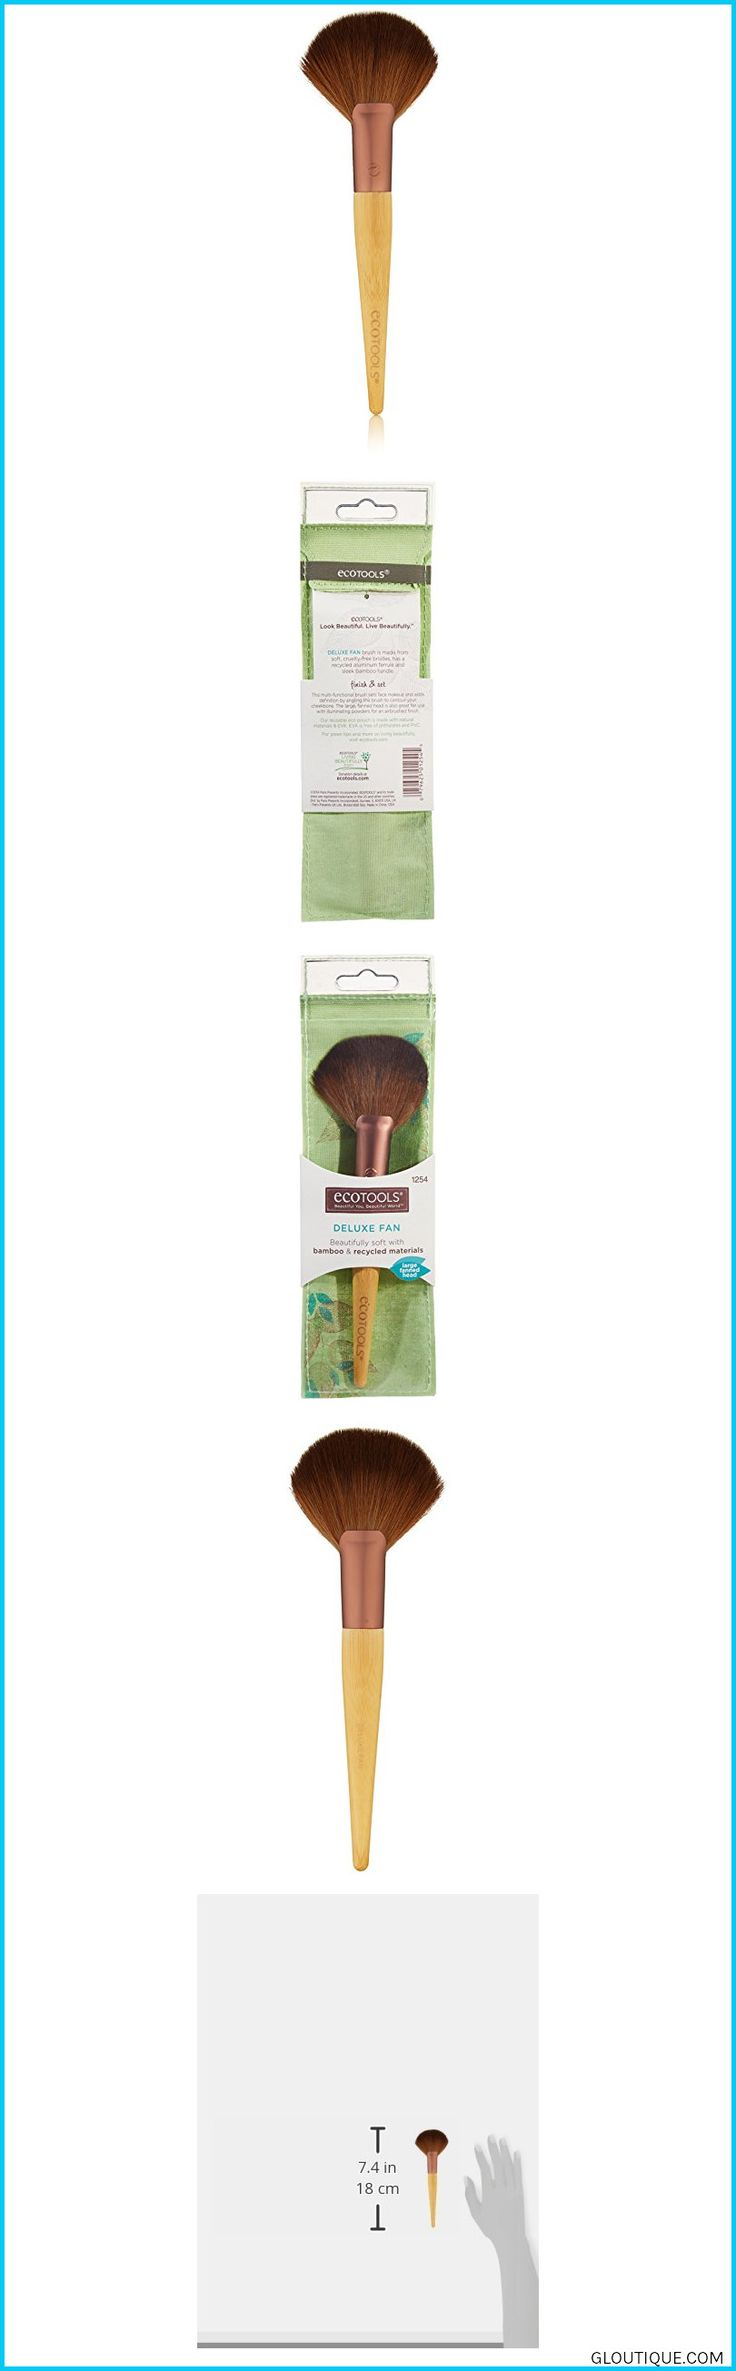 Use with illuminating powders and highlighters Incredibly soft, hand-cut bristles Sleek  handles#makeuptools #makeupartist #makeupbyme #organic #eyes #lips EcoTools Deluxe Fan Brush, 1.16 Ounce #EcoTools #Deluxe #Fan #Brush, #1.16 #Ounce #Reviews